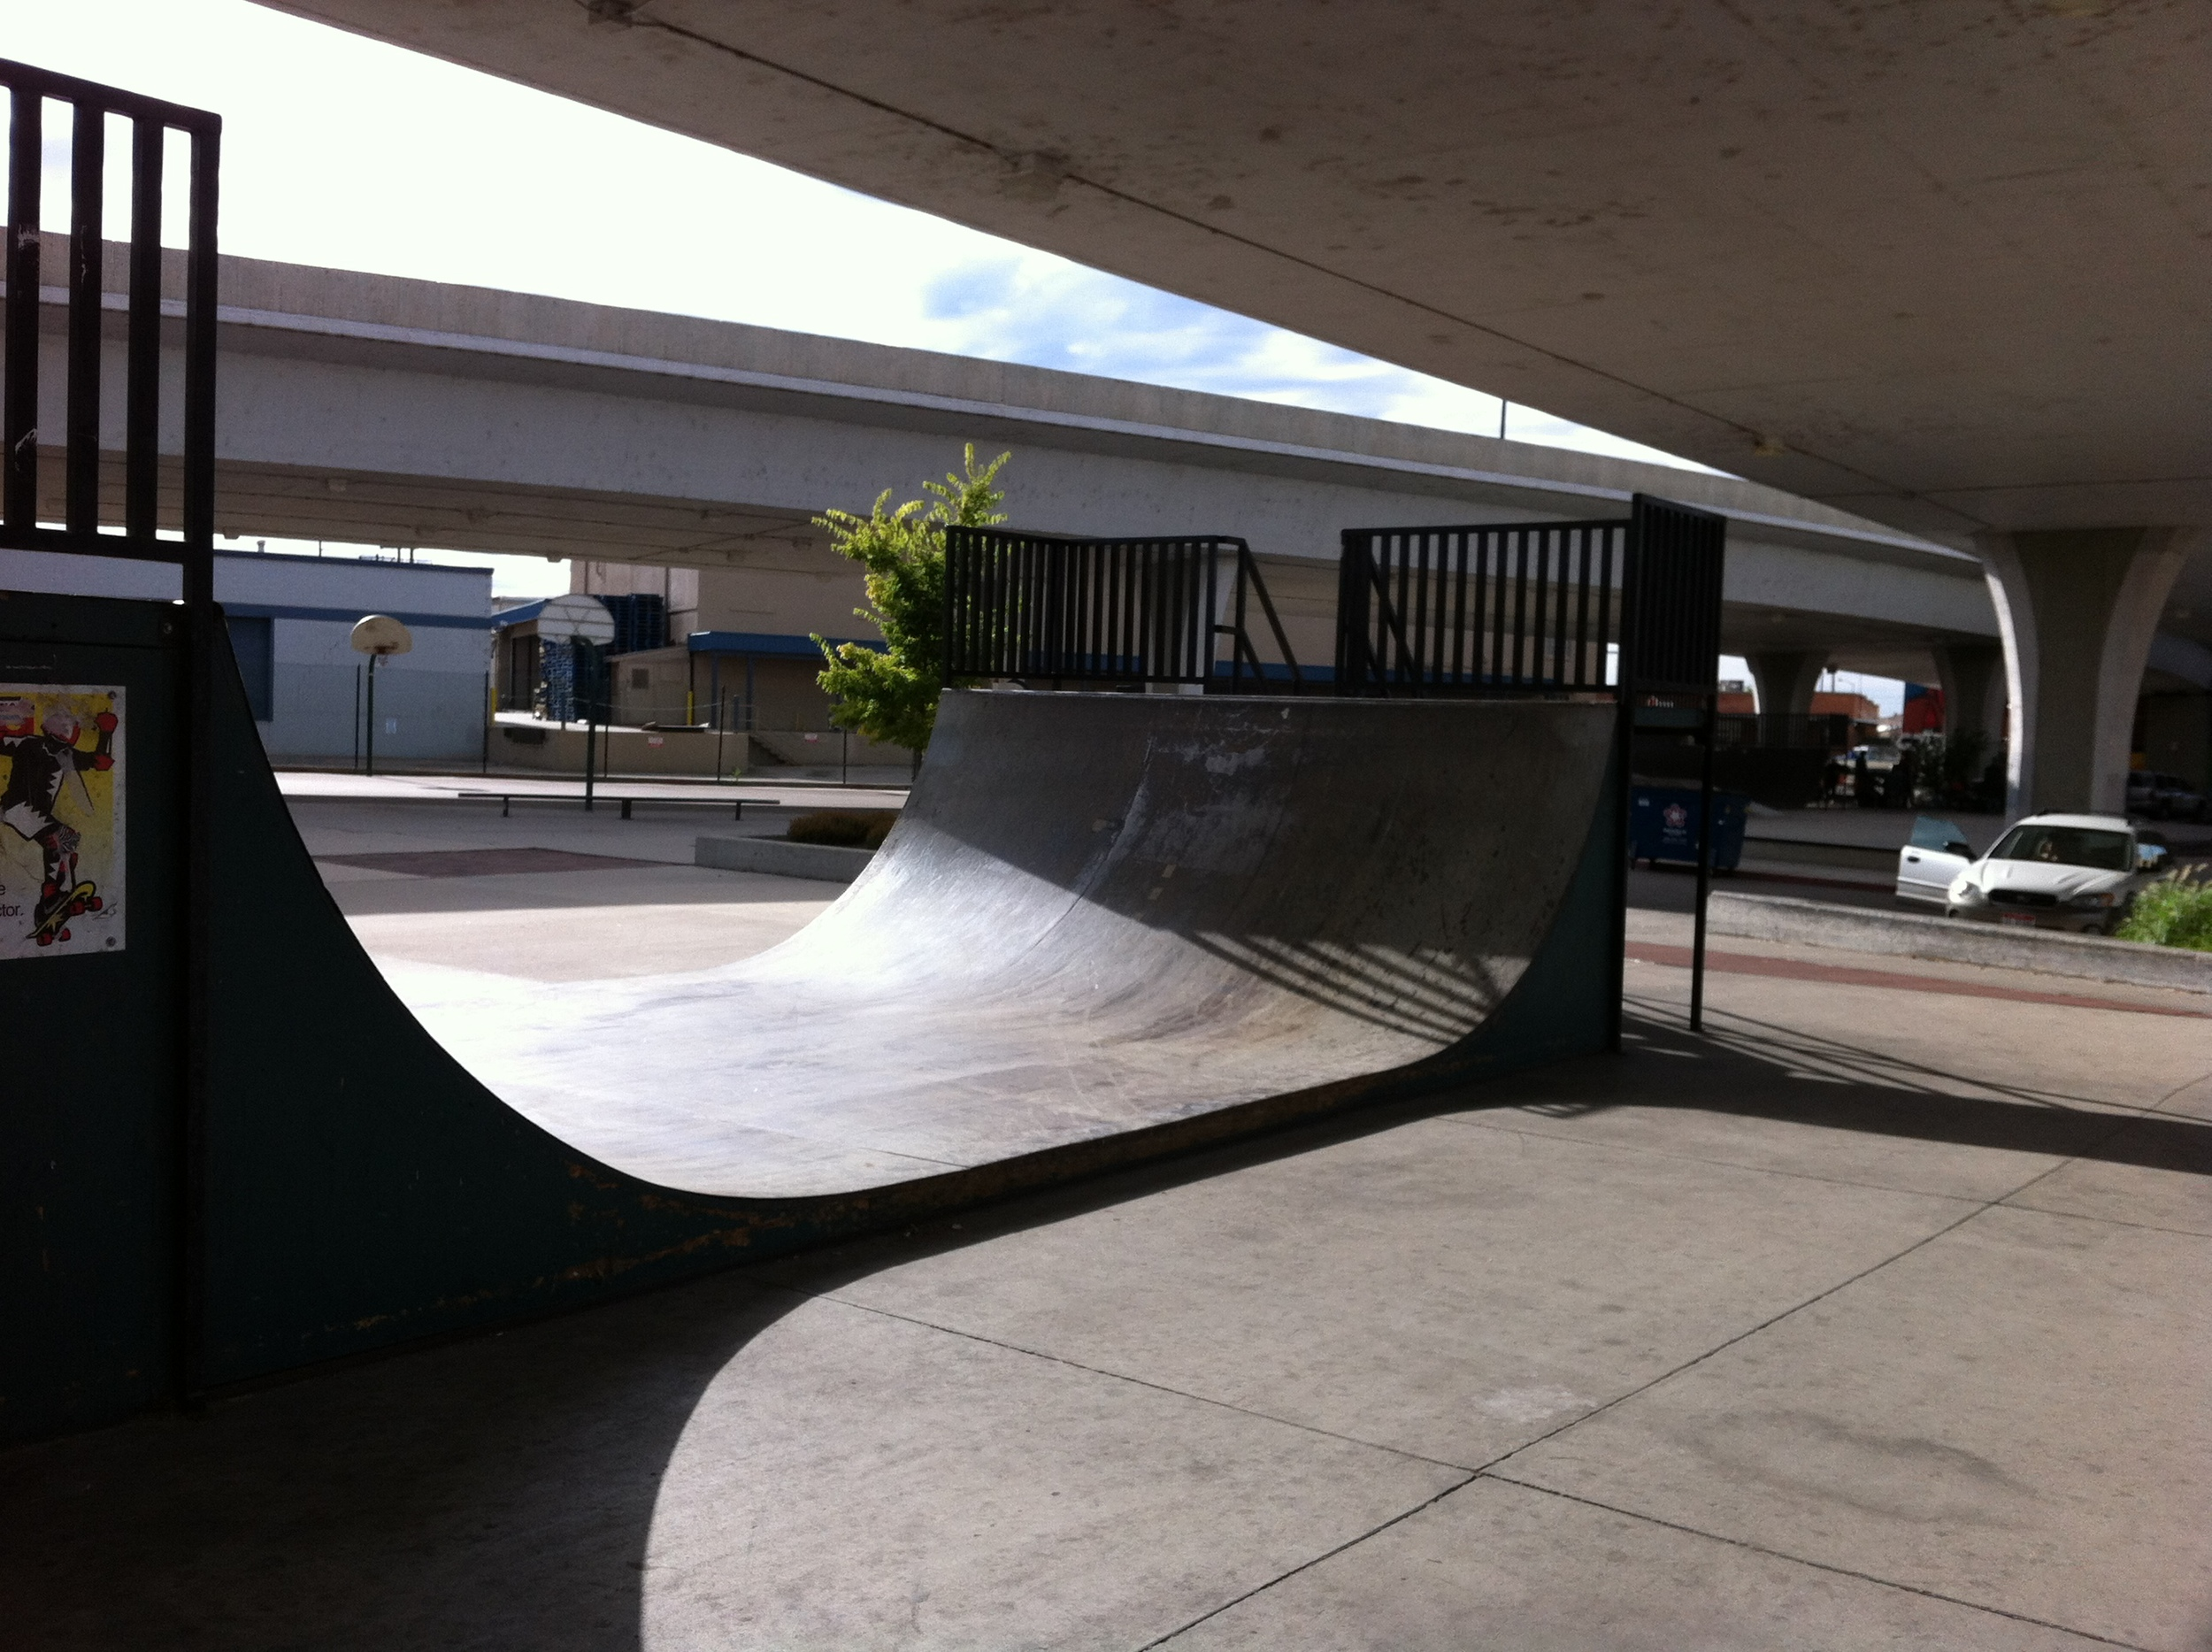 The Boise Skate Park is on the edge of the Linen District. It has a nice edge to it being located under the highway overpass. It as a contemporary sculpture park feel to it.